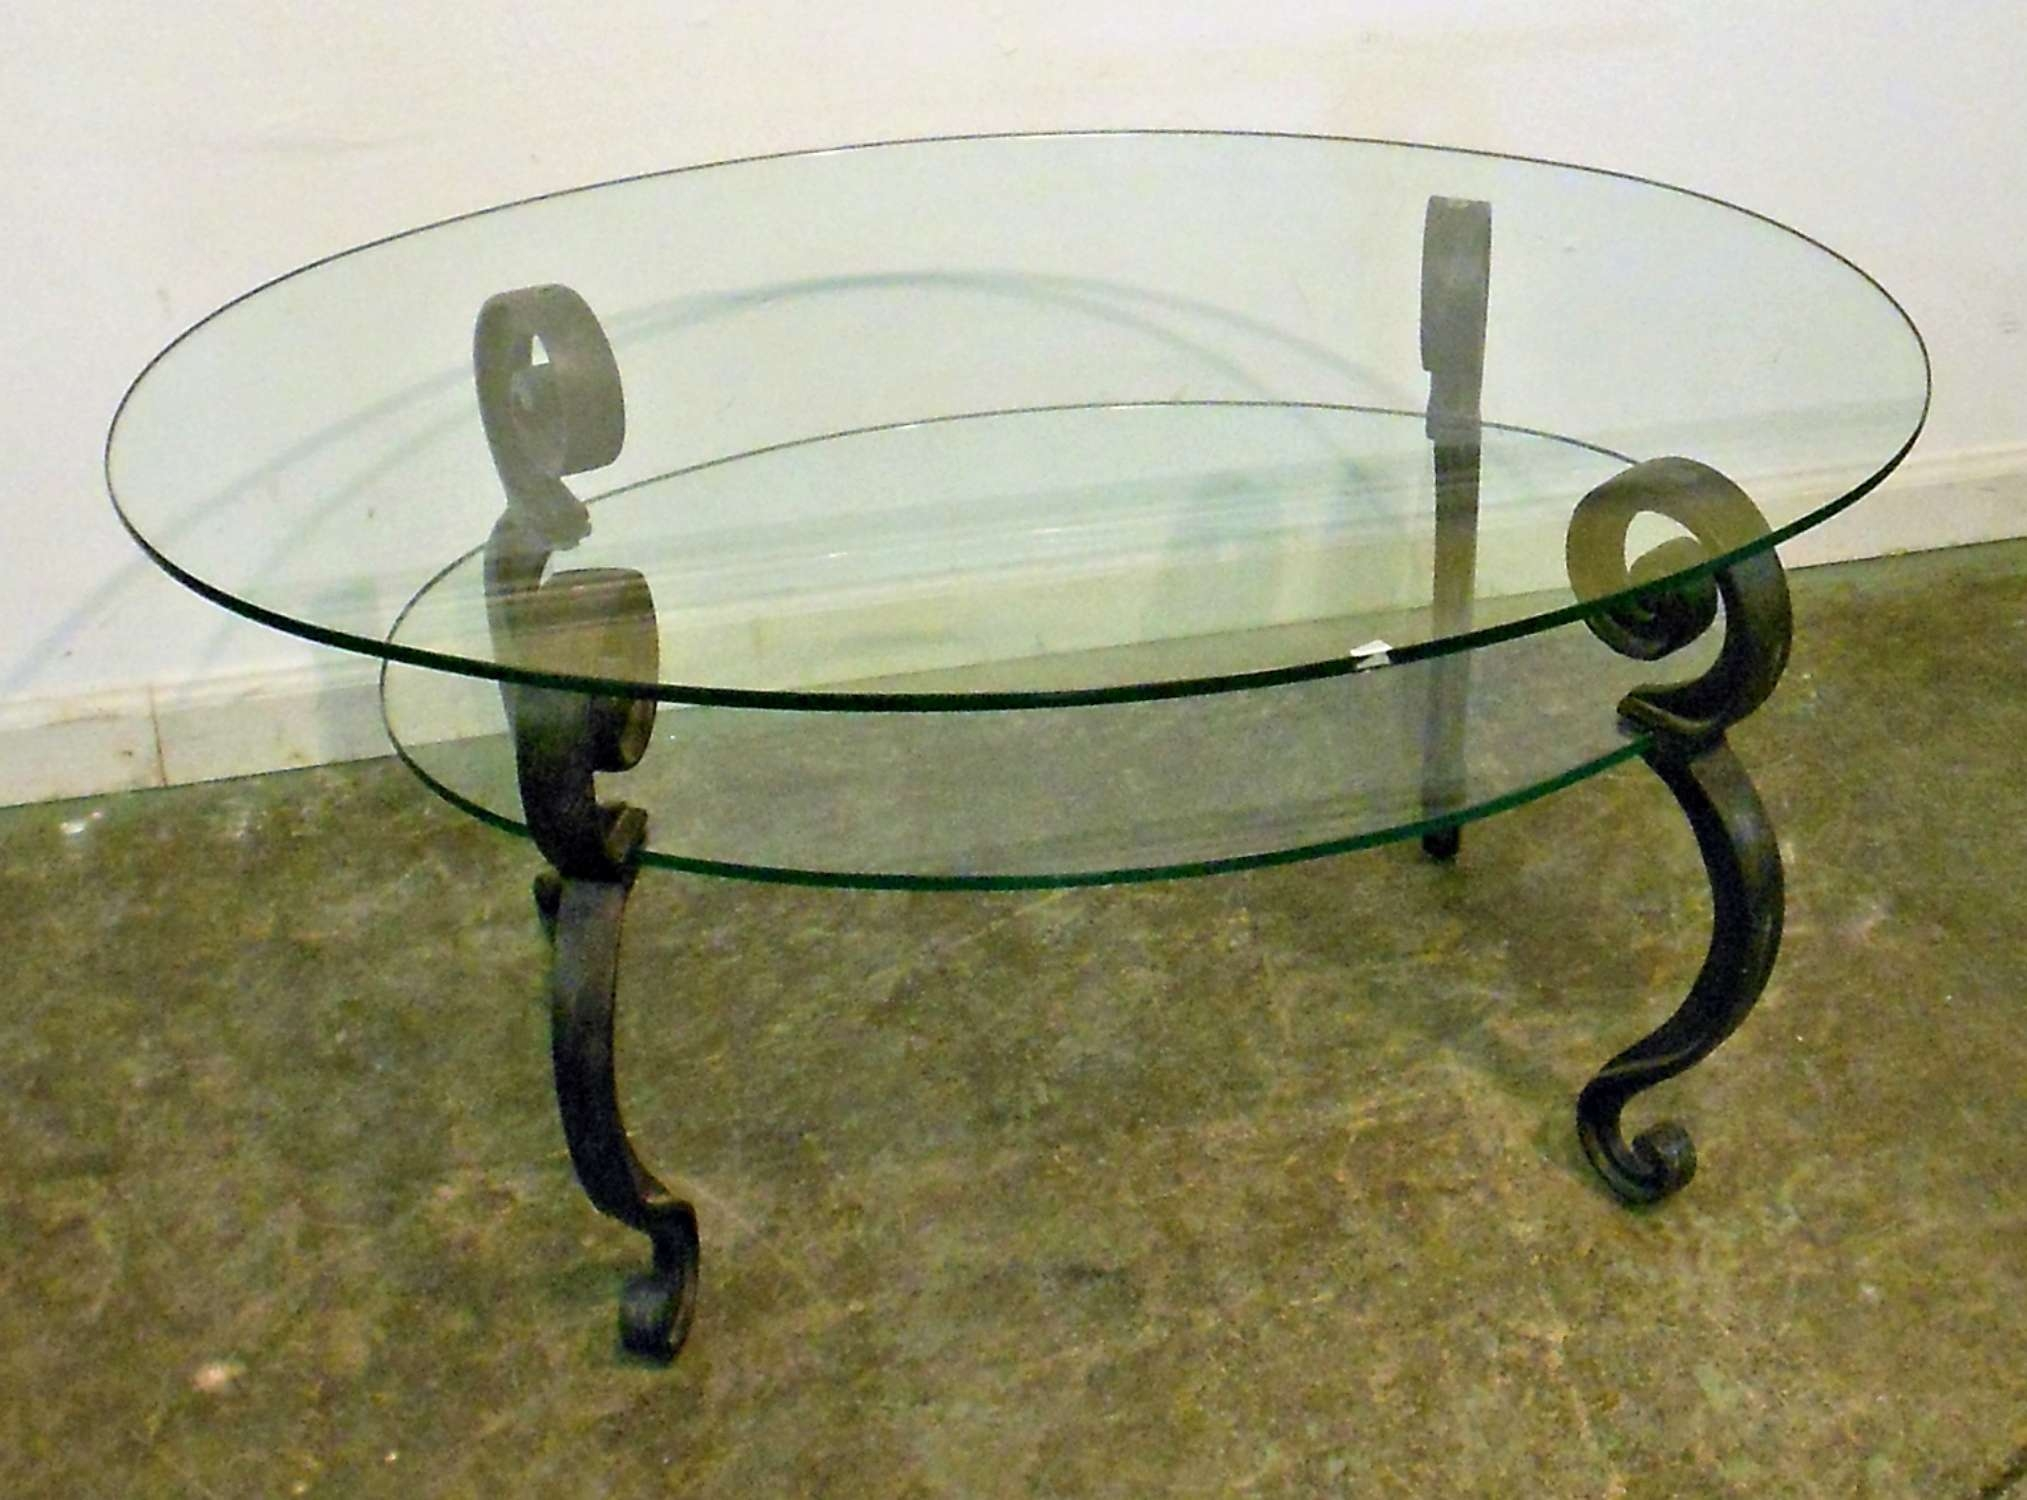 Famous Vintage Glass Top Coffee Tables Inside Vintage Glass Top Coffee Table With Black Metal Legs And Shelves (View 4 of 20)